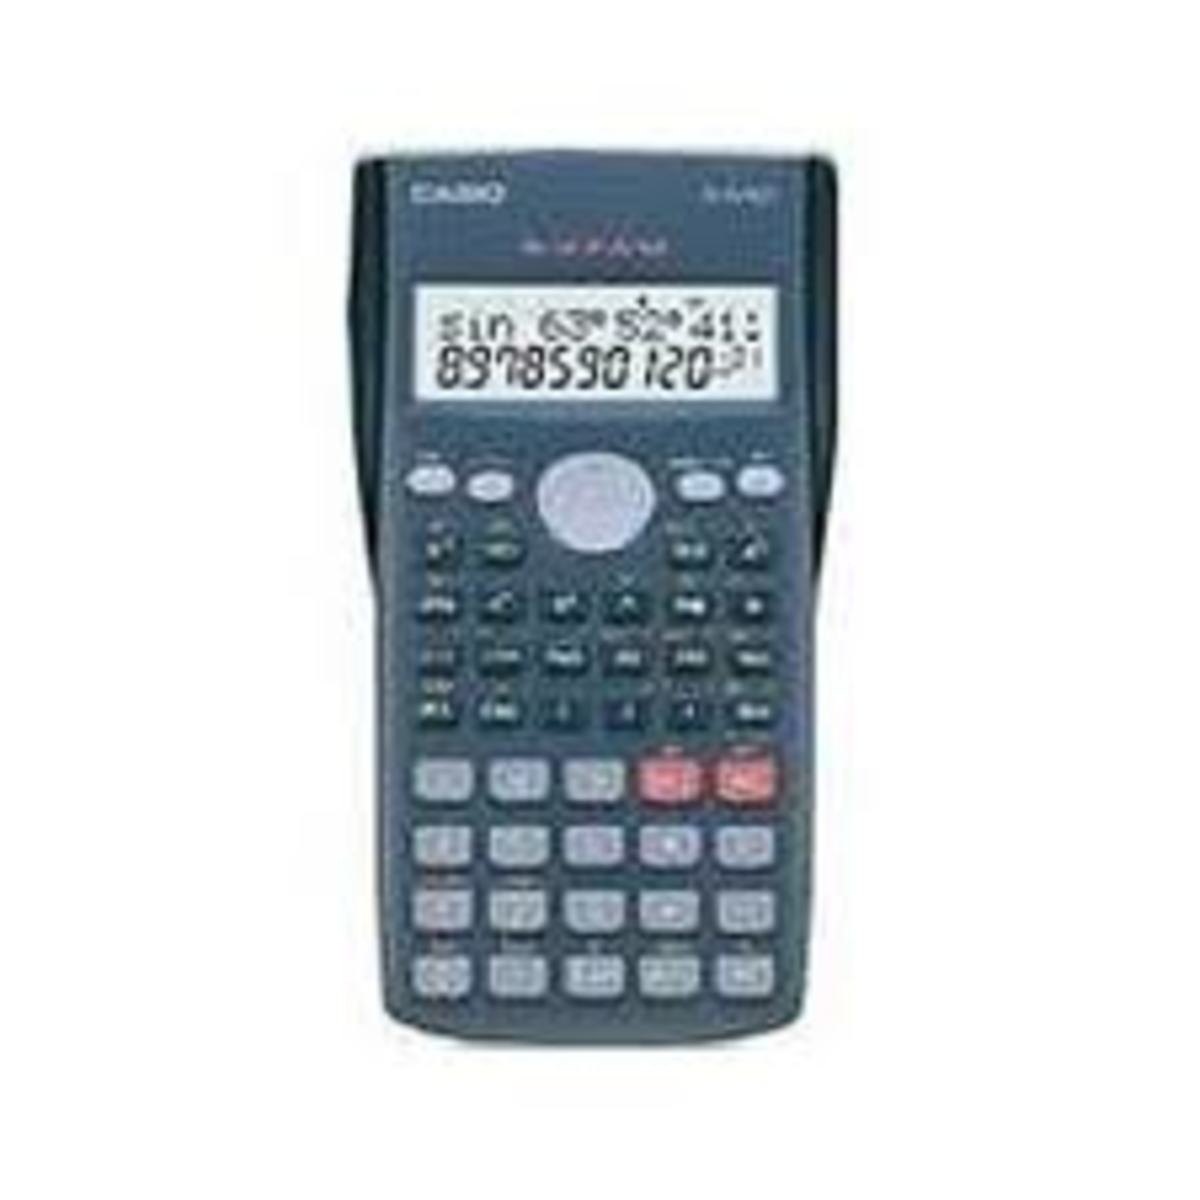 The FX-115 W S-V.A.P.M. is a solar calculator, and is one the NCEES exam calculator list.